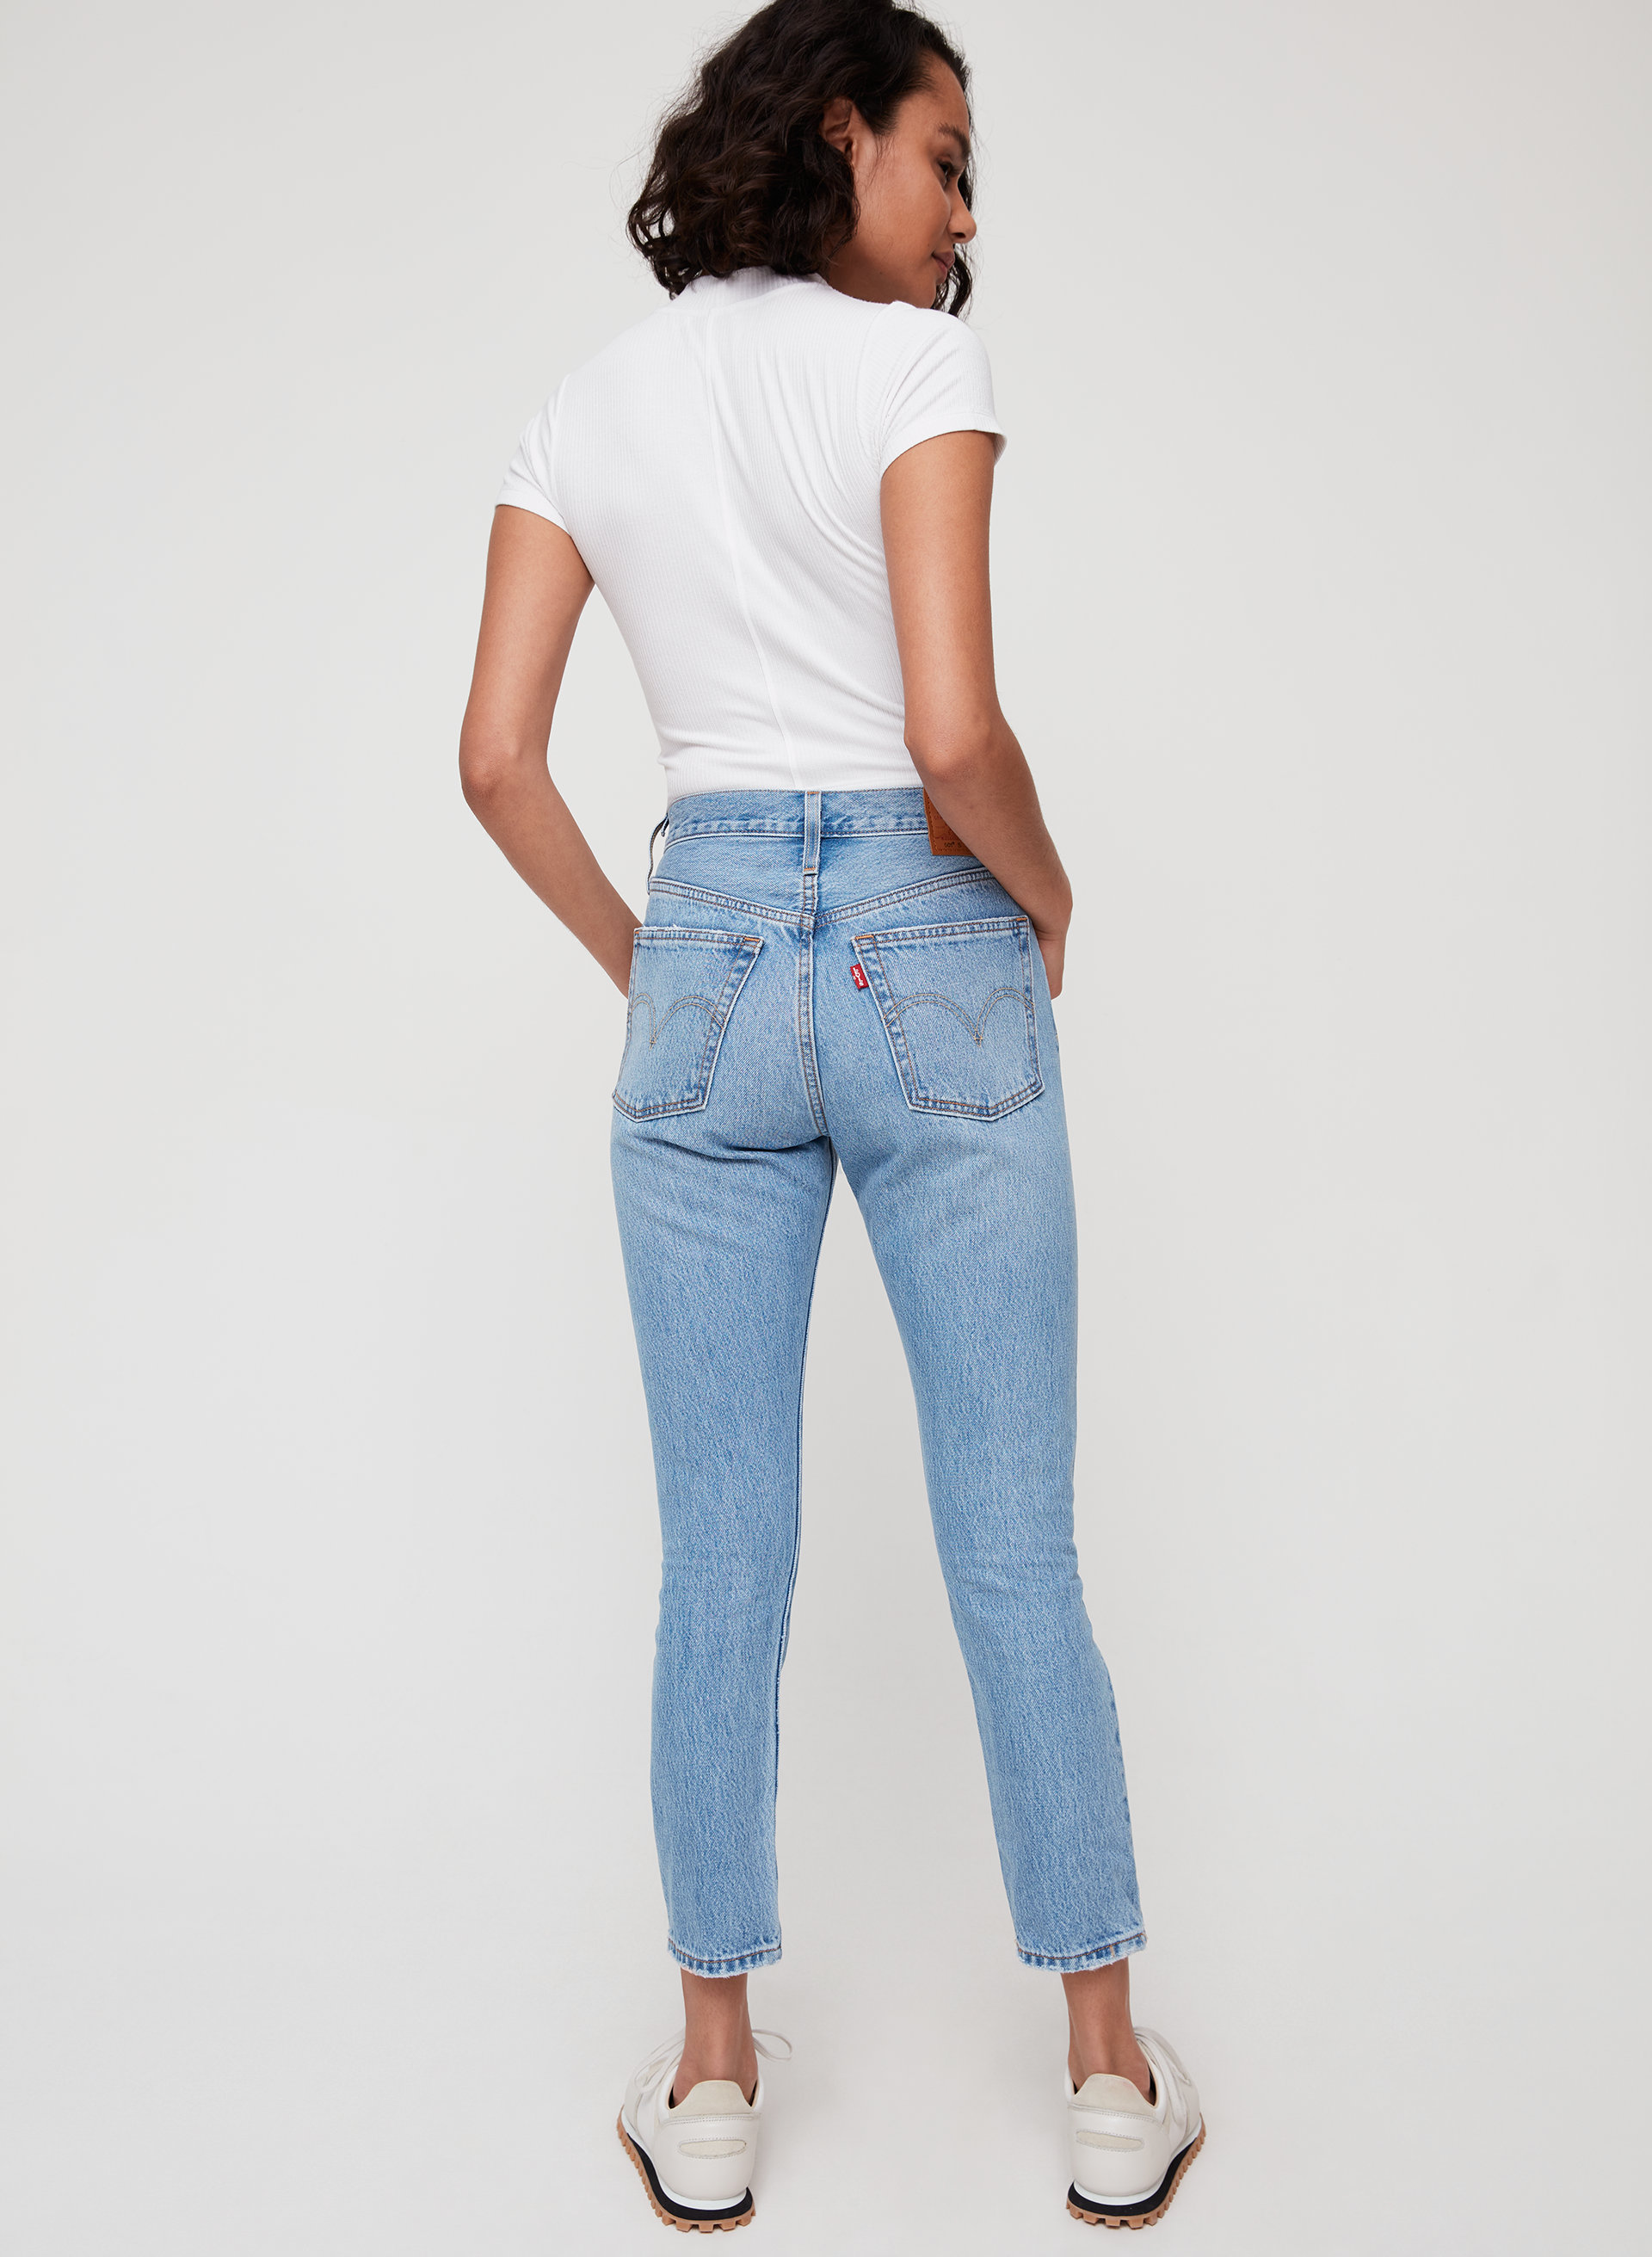 united kingdom outlet boutique on sale Levi's 501 SKINNY | Aritzia CA